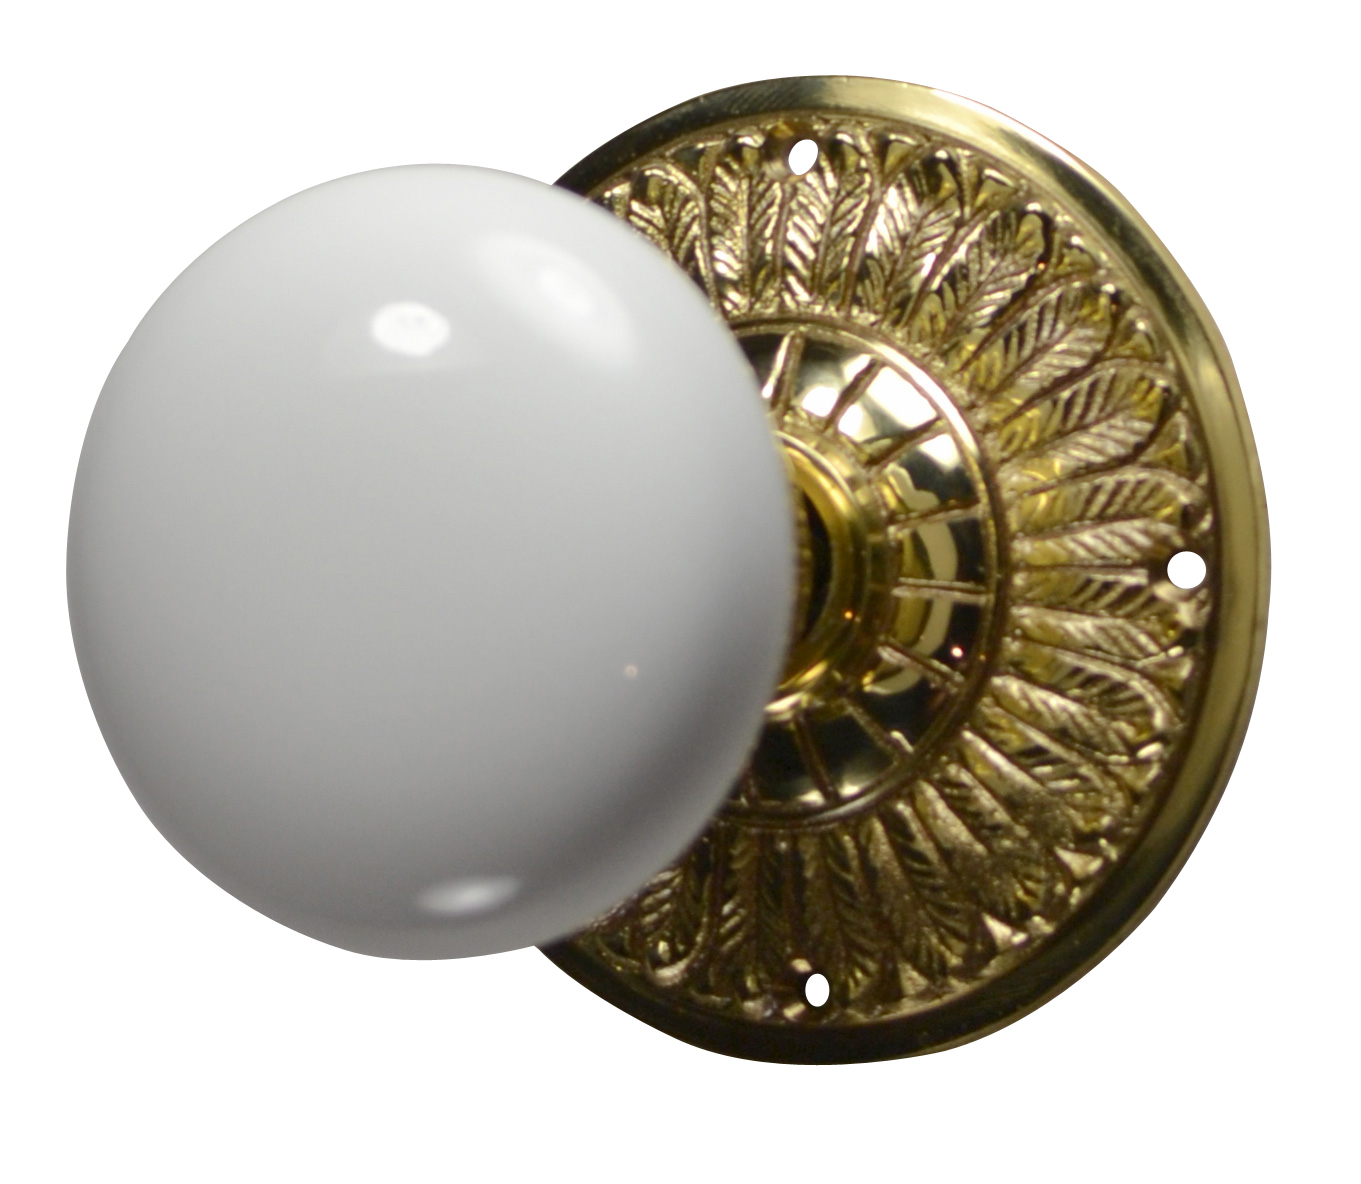 Feathers White Porcelain Door Knob (Polished Brass Finish)